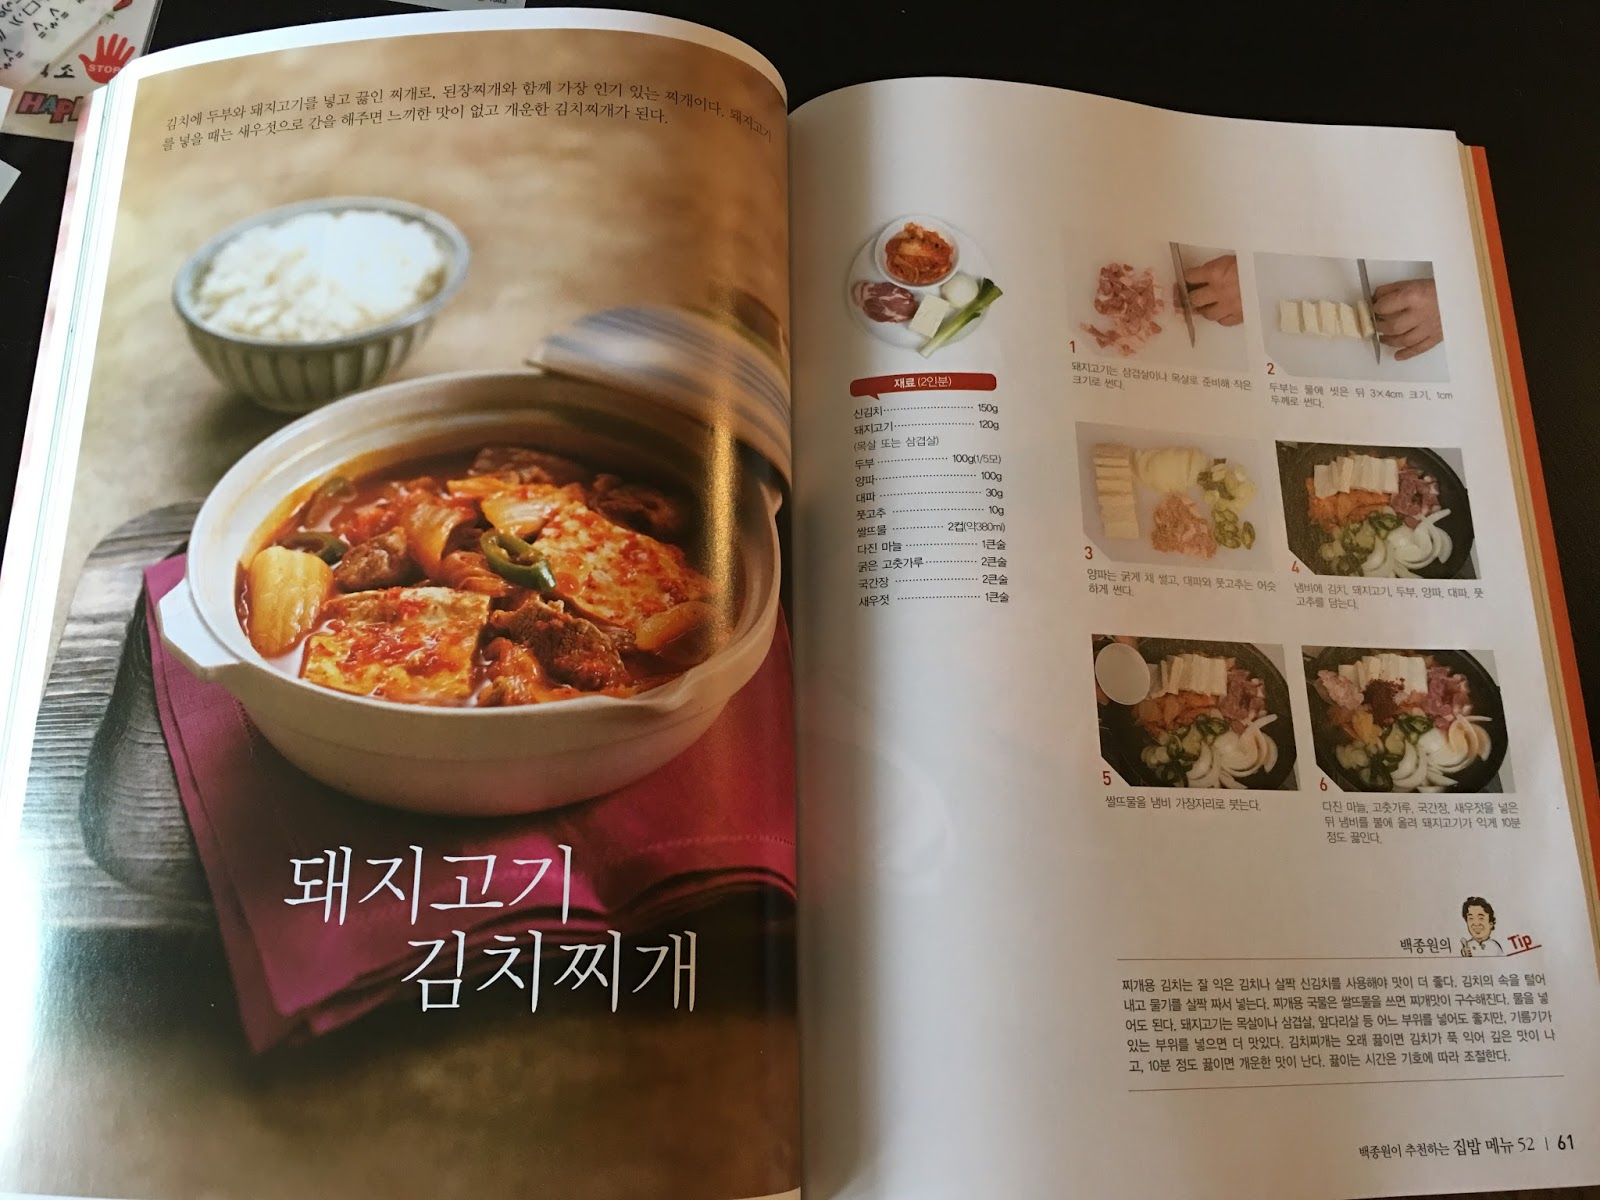 Chef ks korean kitchen inspired by naver blogs kimchi jjigae with baeks easy and delicious recipes have earned him a large following in korea these days and so i picked it up during my trip to korea a few months back forumfinder Image collections